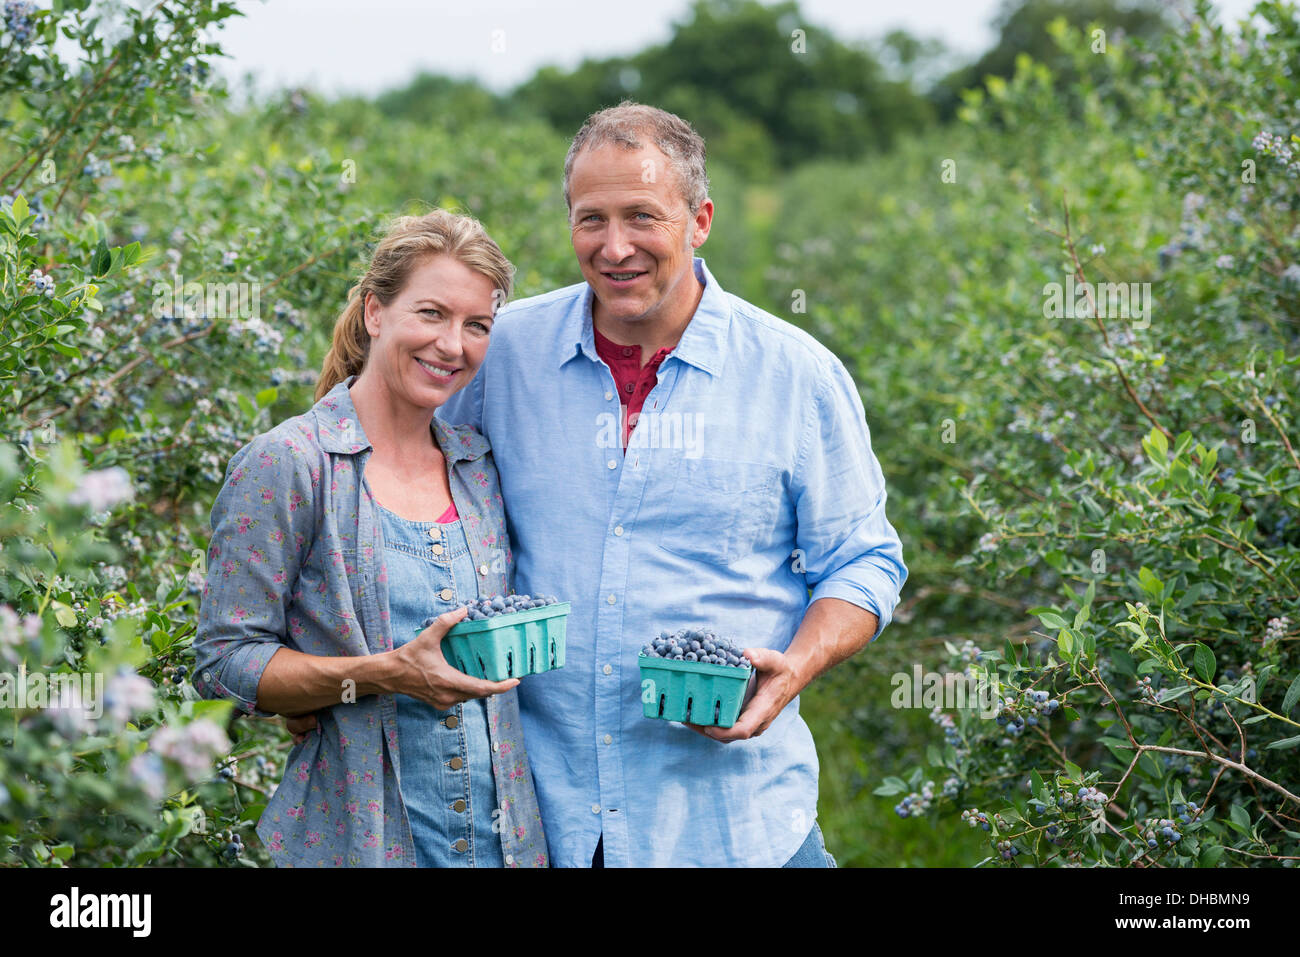 An organic fruit farm. A mature couple picking the berry fruits from the bushes. - Stock Image